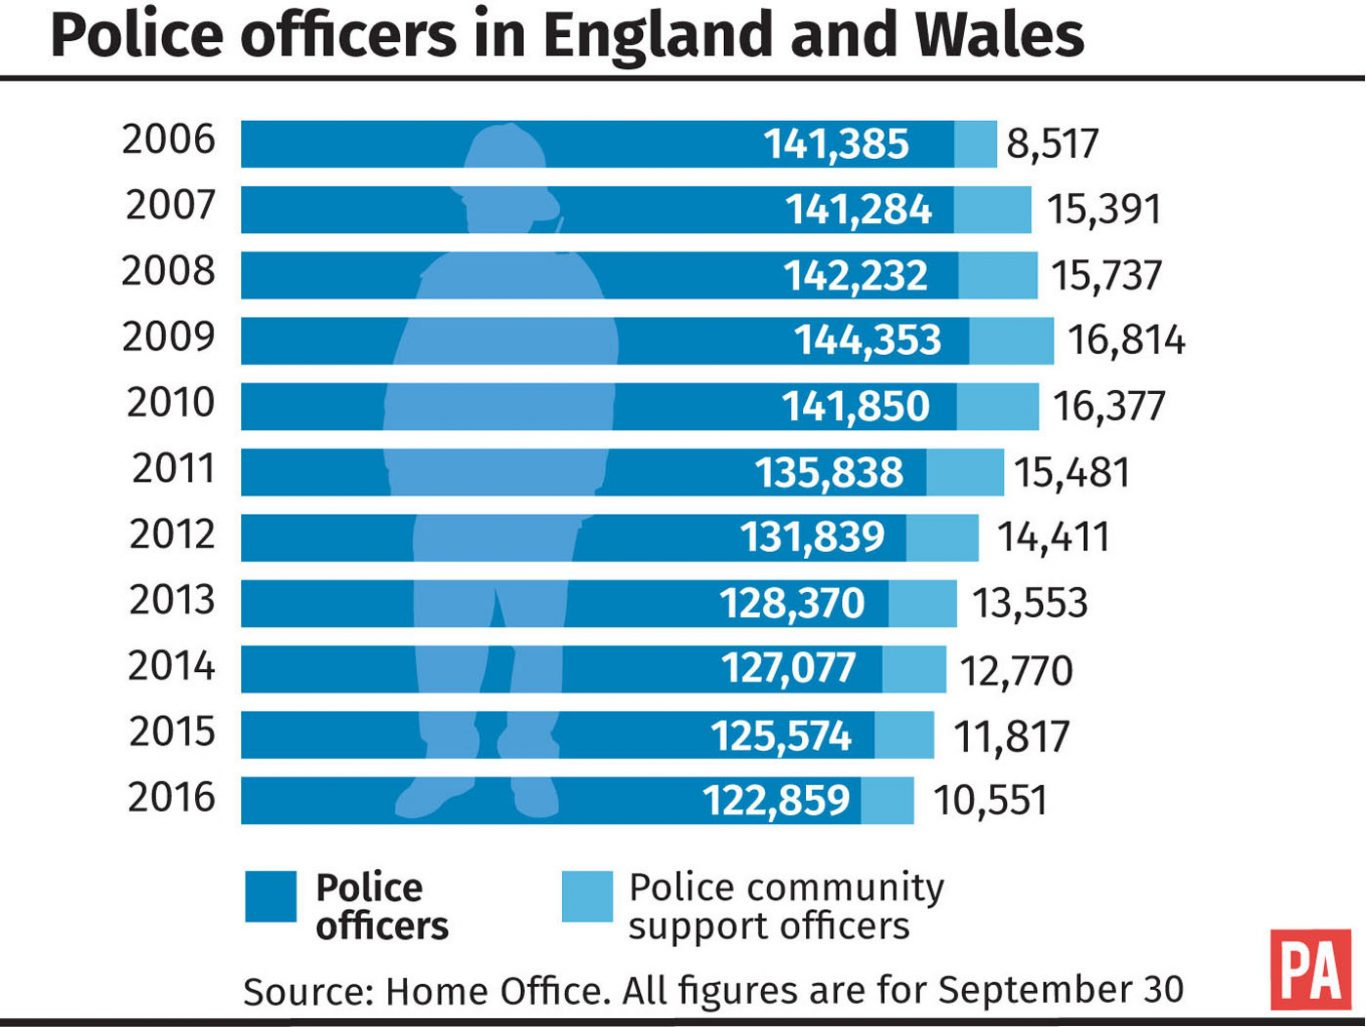 Police officers in England and Wales